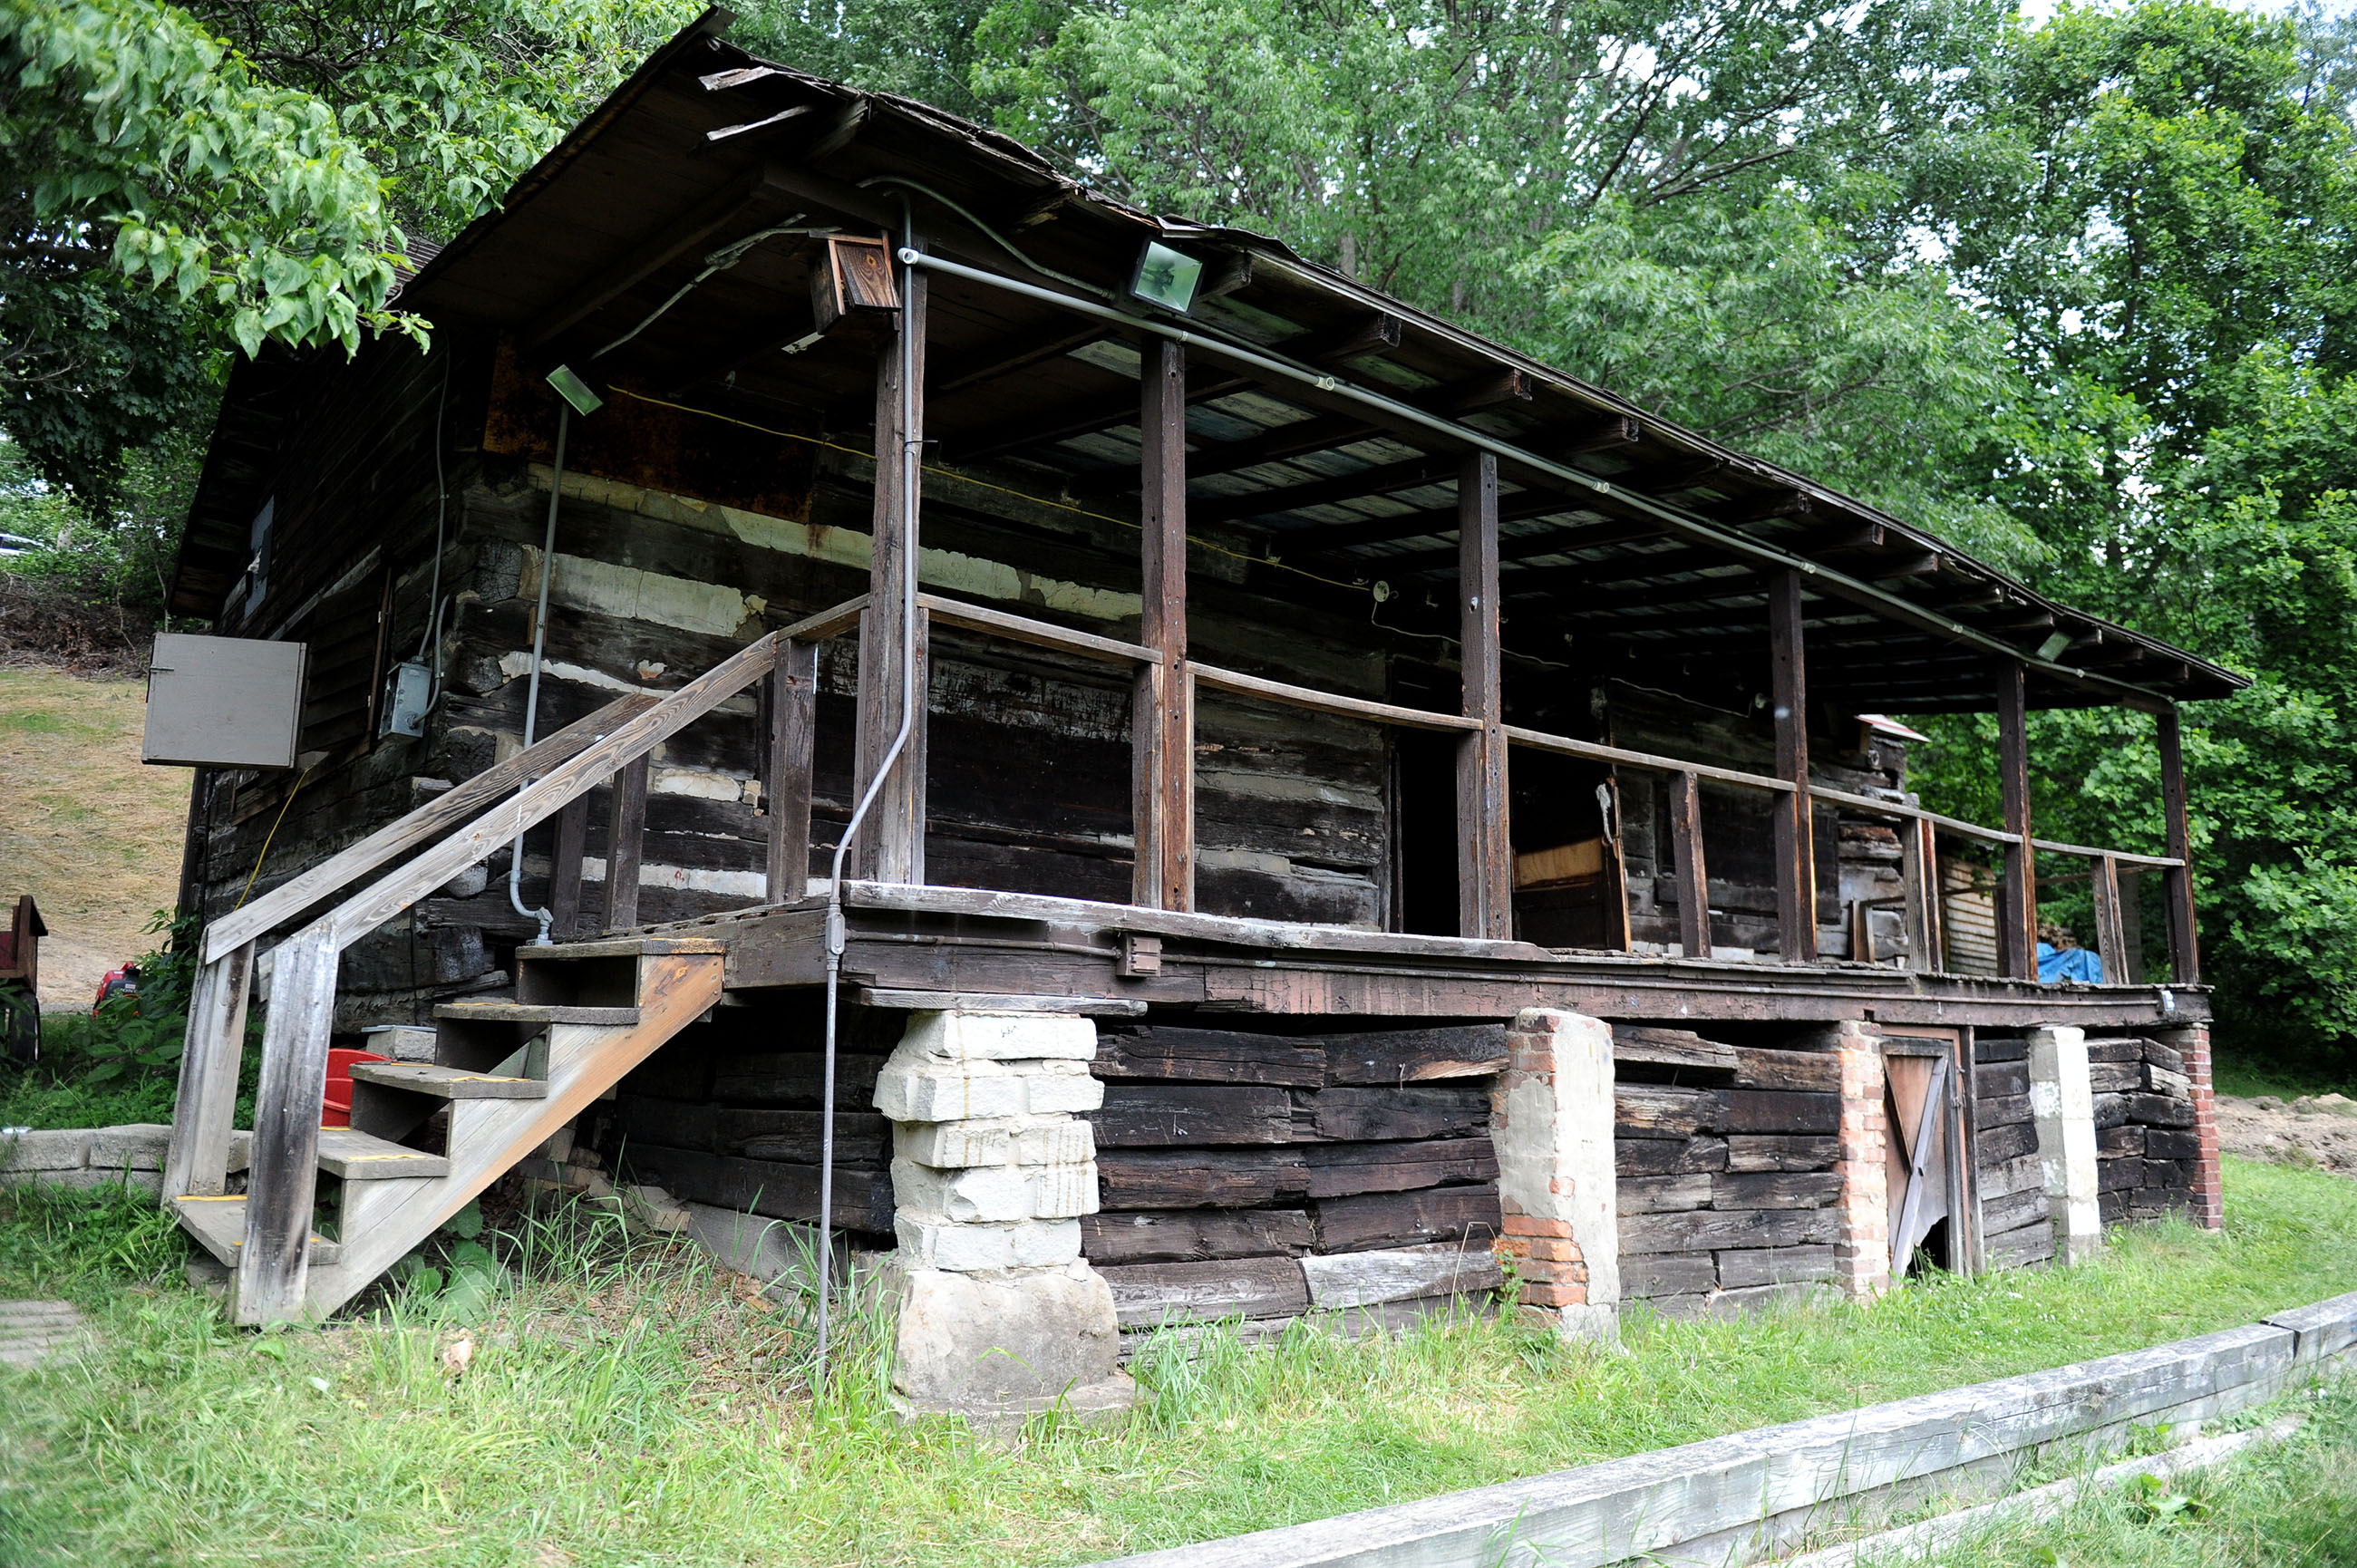 Oakdale boy scout cabin gets makeover through tv show for Barn builders show